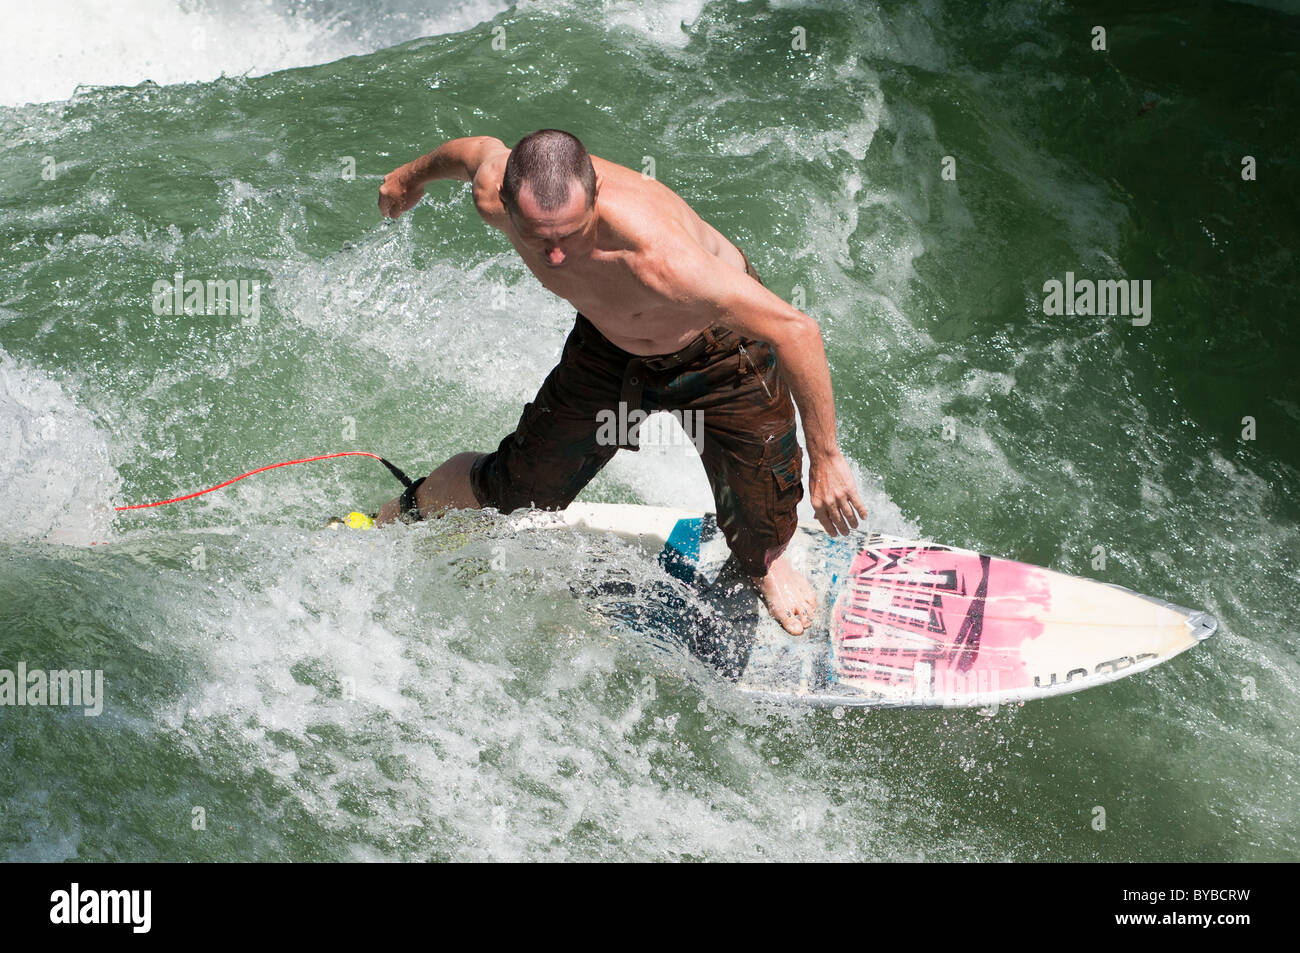 River surfing at Englischer garten in Munich, Germany. - Stock Image